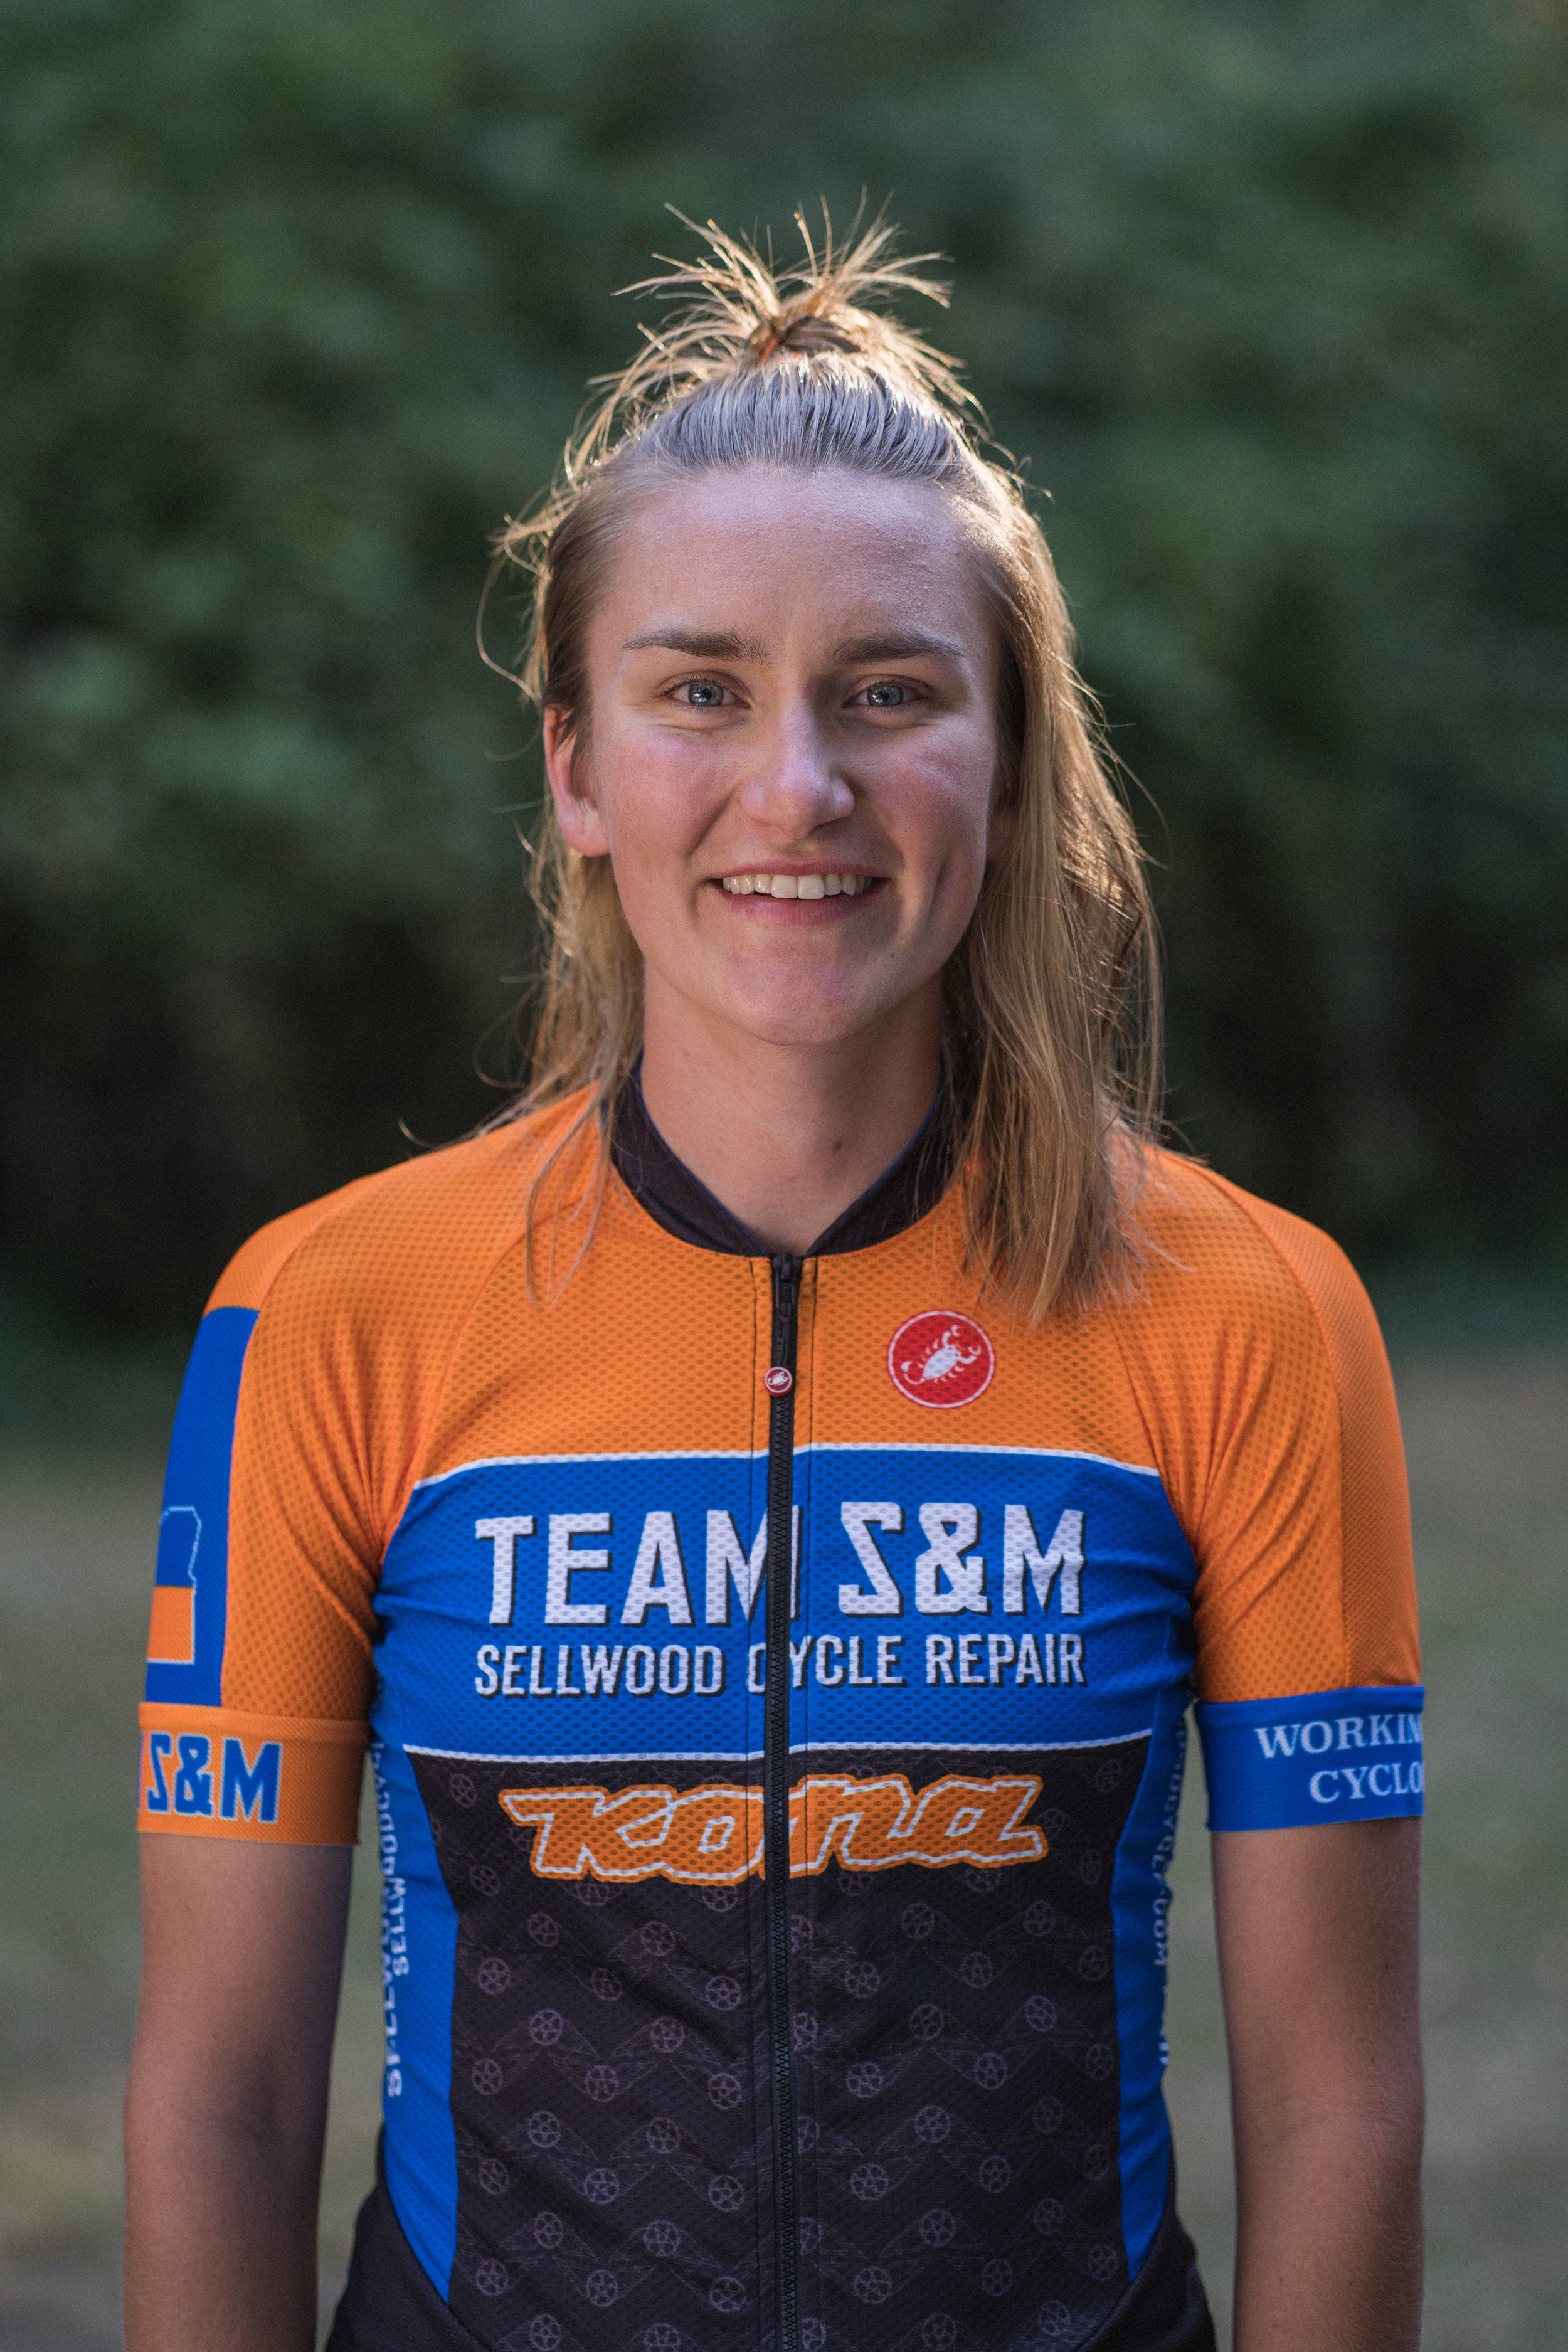 Sophie joined the Team S&M CX roster in 2018 and capped her inaugural season with the ride of the year, taking bronze in the U23 US women's championship event. She is a Bend, OR native who practically grew up on a 'cross course. Her dirt career began with the Bend Endurance Academy racing junior MTB and CX. Aided by her dual-citizenship, she continued her racing education post-high school with a gap year immersion in Swiss cyclocross, including a portion of the EKZ 'Cross Series. After returning to the US, she enrolled at Bard College and earned multiple collegiate and U23 podiums at the Grand Prix of Gloucester, NBX, Northampton International, and Collegiate Nationals. This December she will complete her bachelor degree in environmental studies with a minor in public health at Fort Lewis College, where she is also a multi-discipline member of the cycling team.